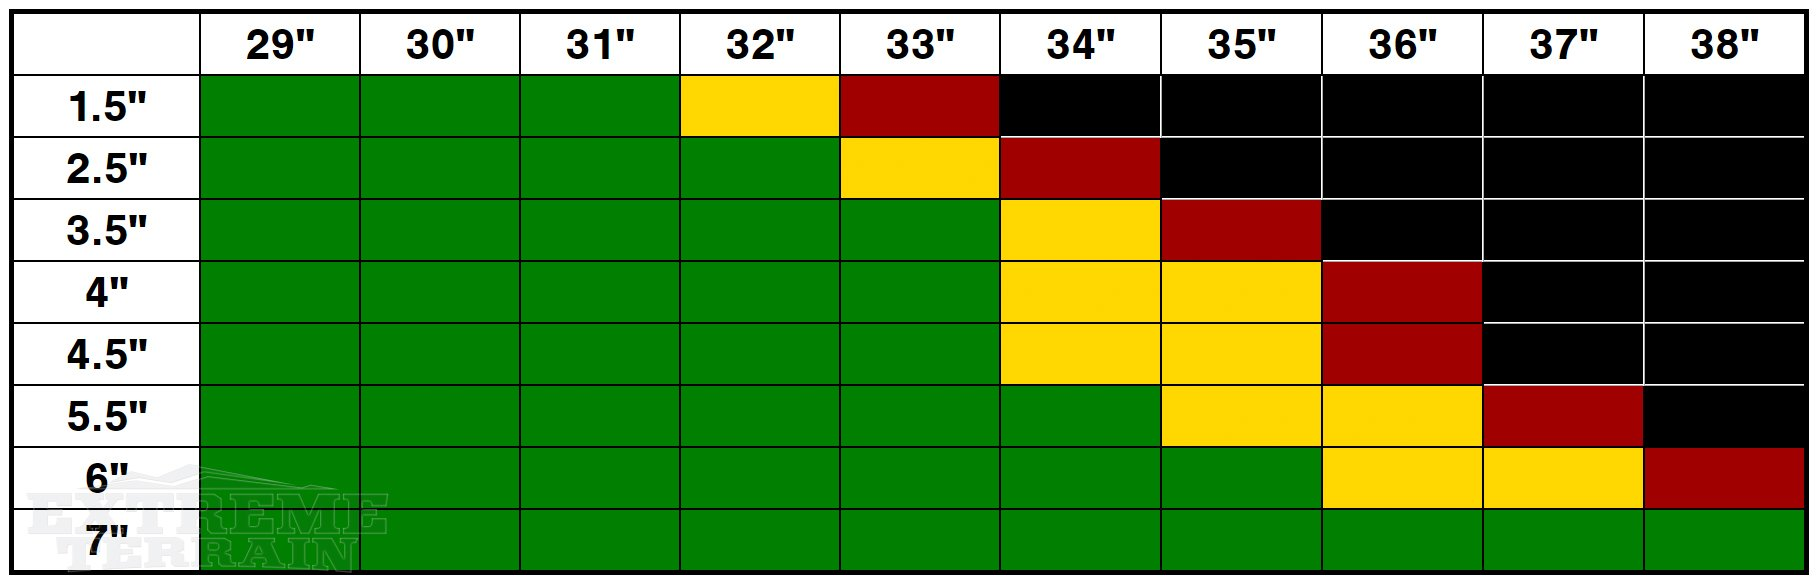 YJ Wrangler Lift Height and Tire Size Compatibility Chart